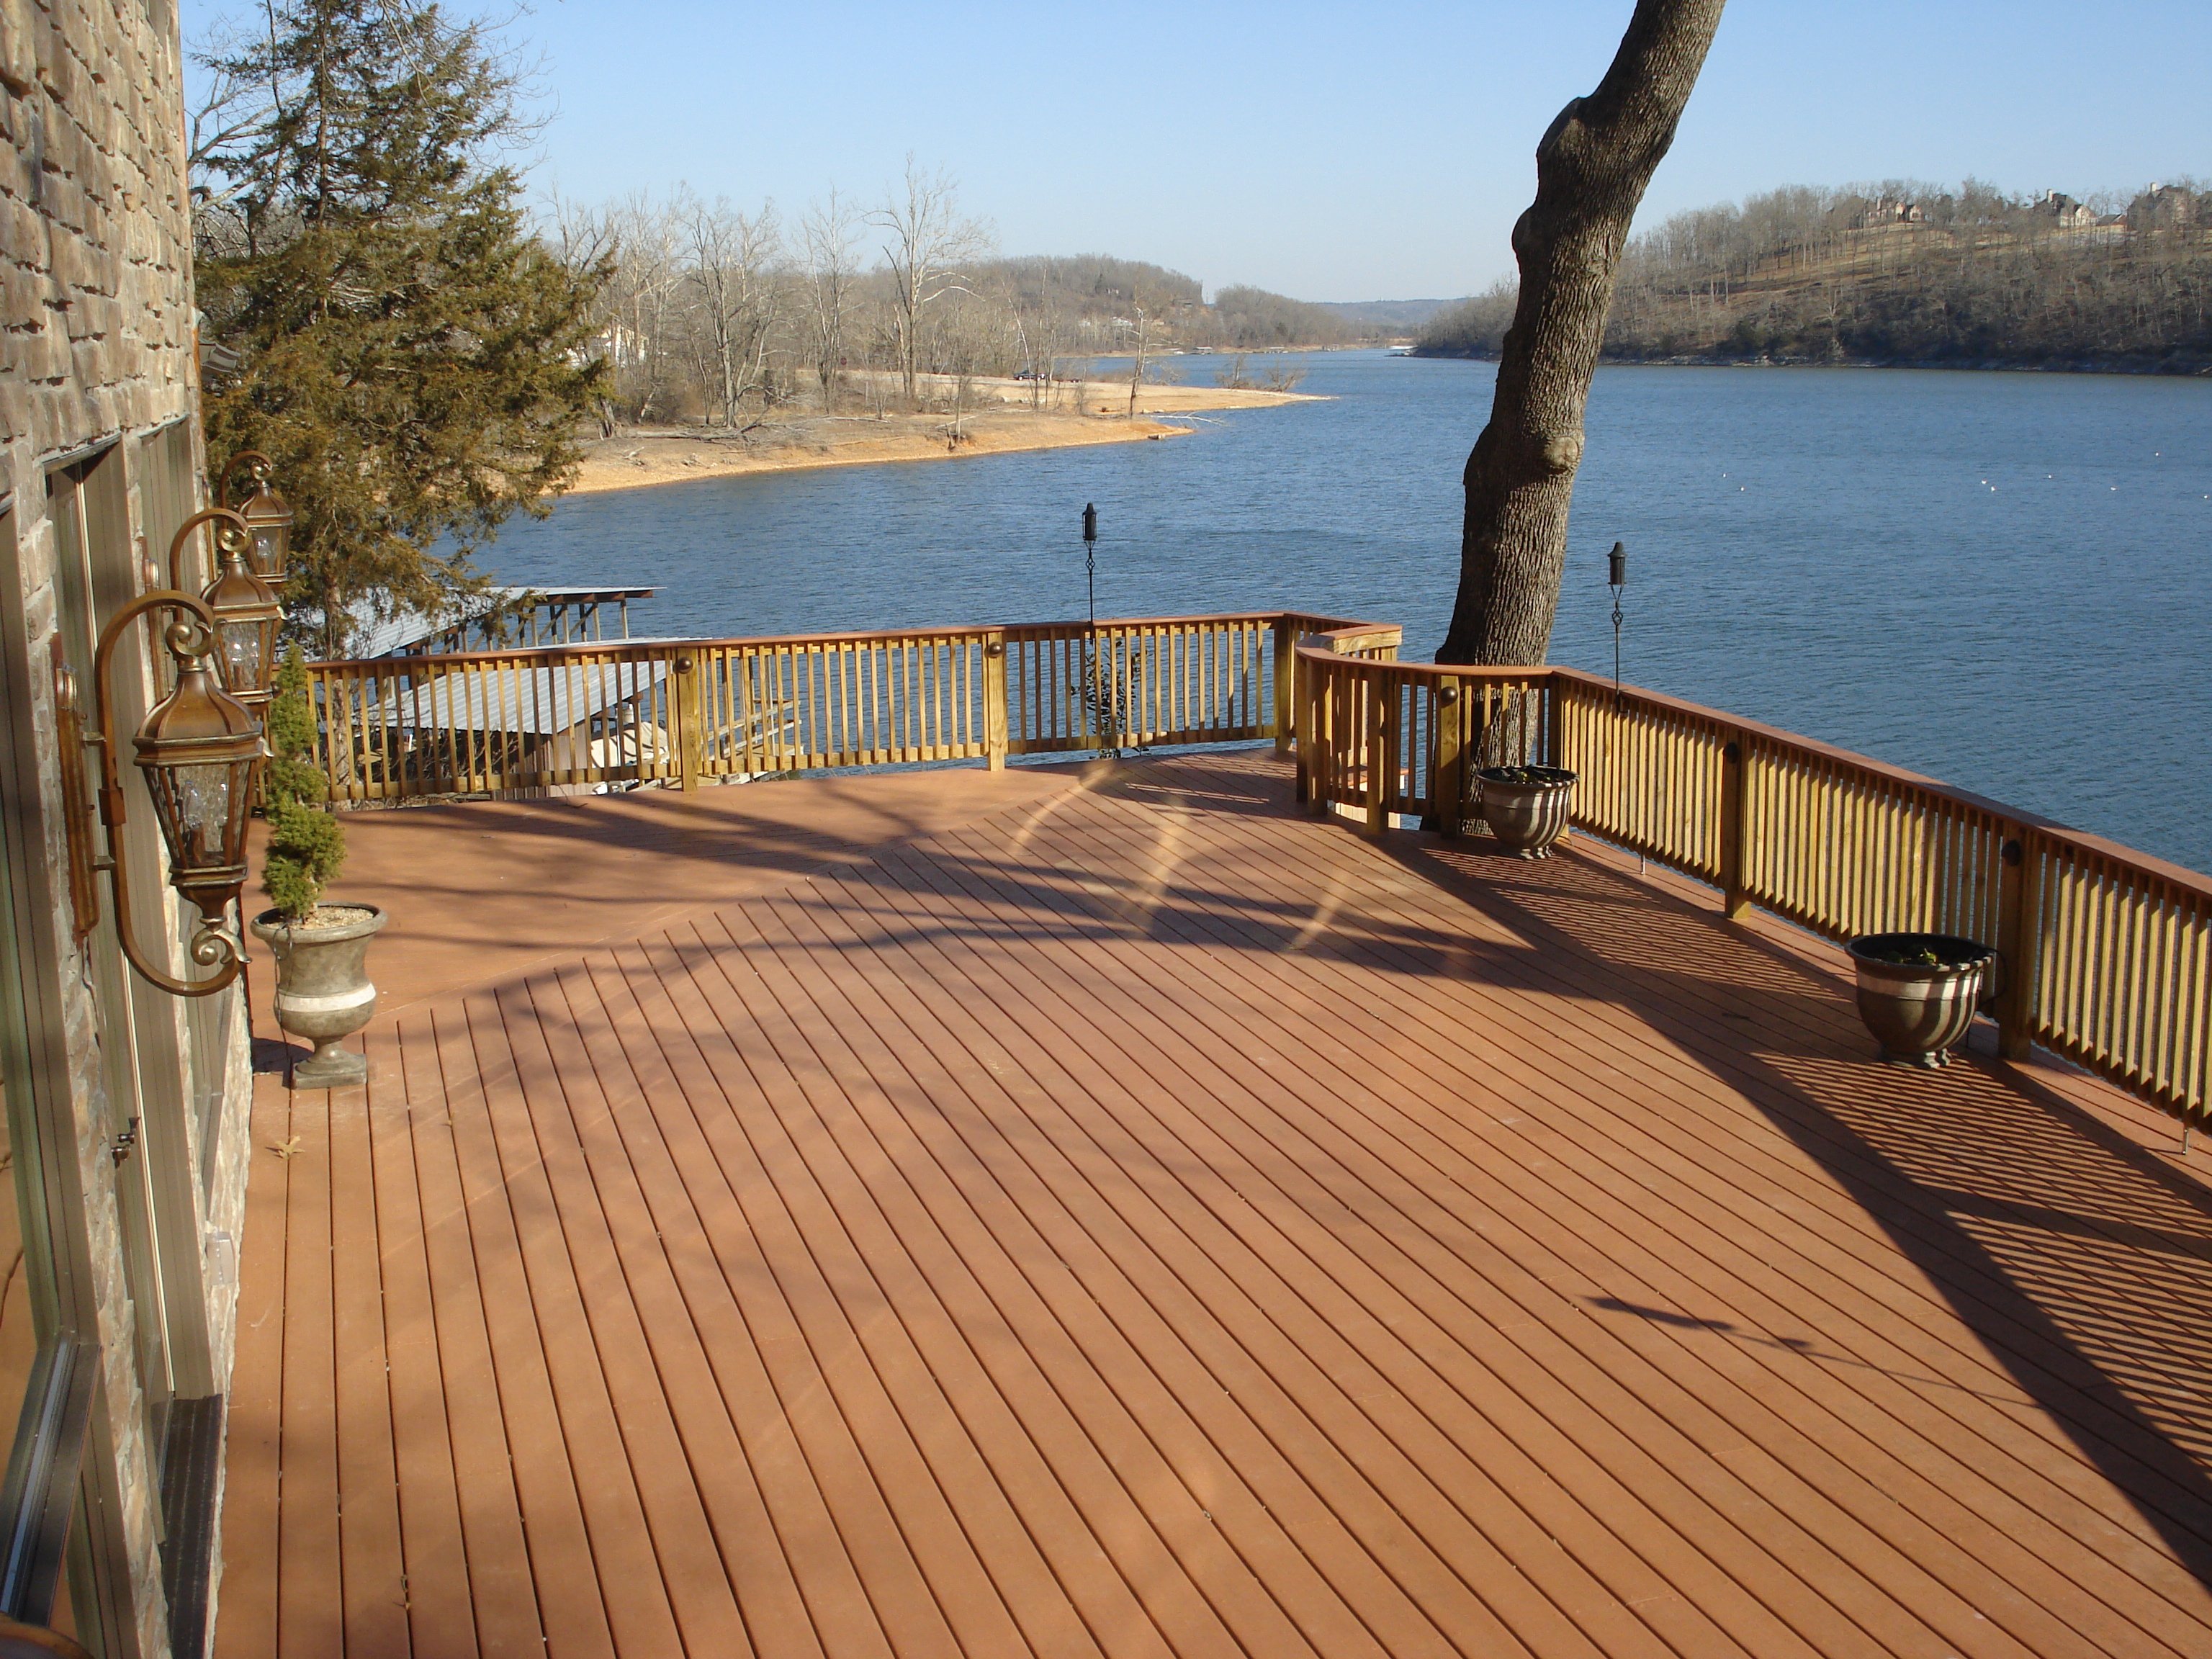 Composite Decks Built by Janacek Construction